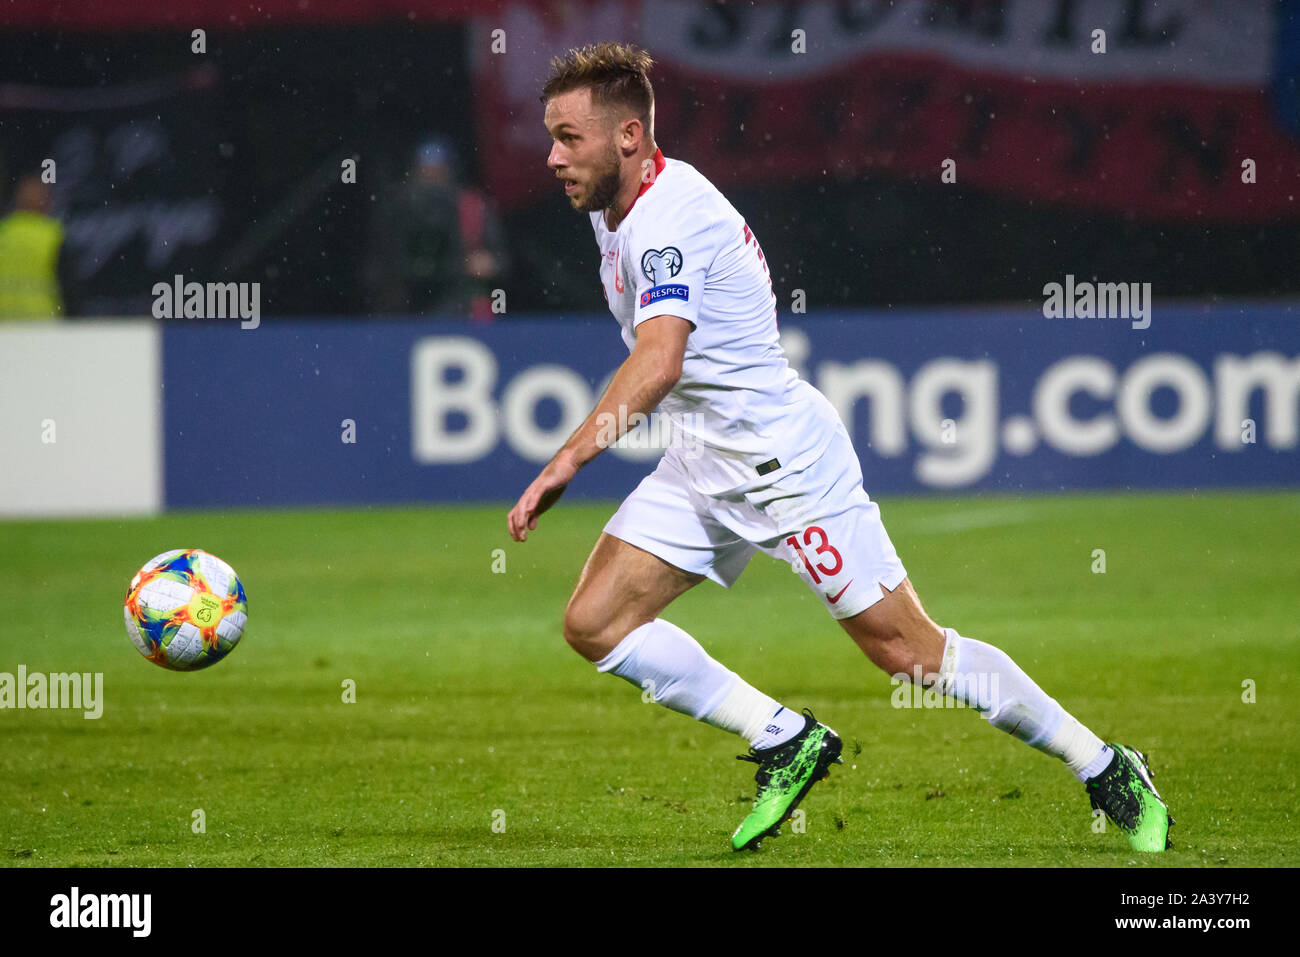 RIGA, LATVIA. 10th October, 2019. Maciej Rybus, during UEFA EURO 2020 Qualification game between national football team of Latvia and team Poland. Credit: Gints Ivuskans/Alamy Live News Stock Photo